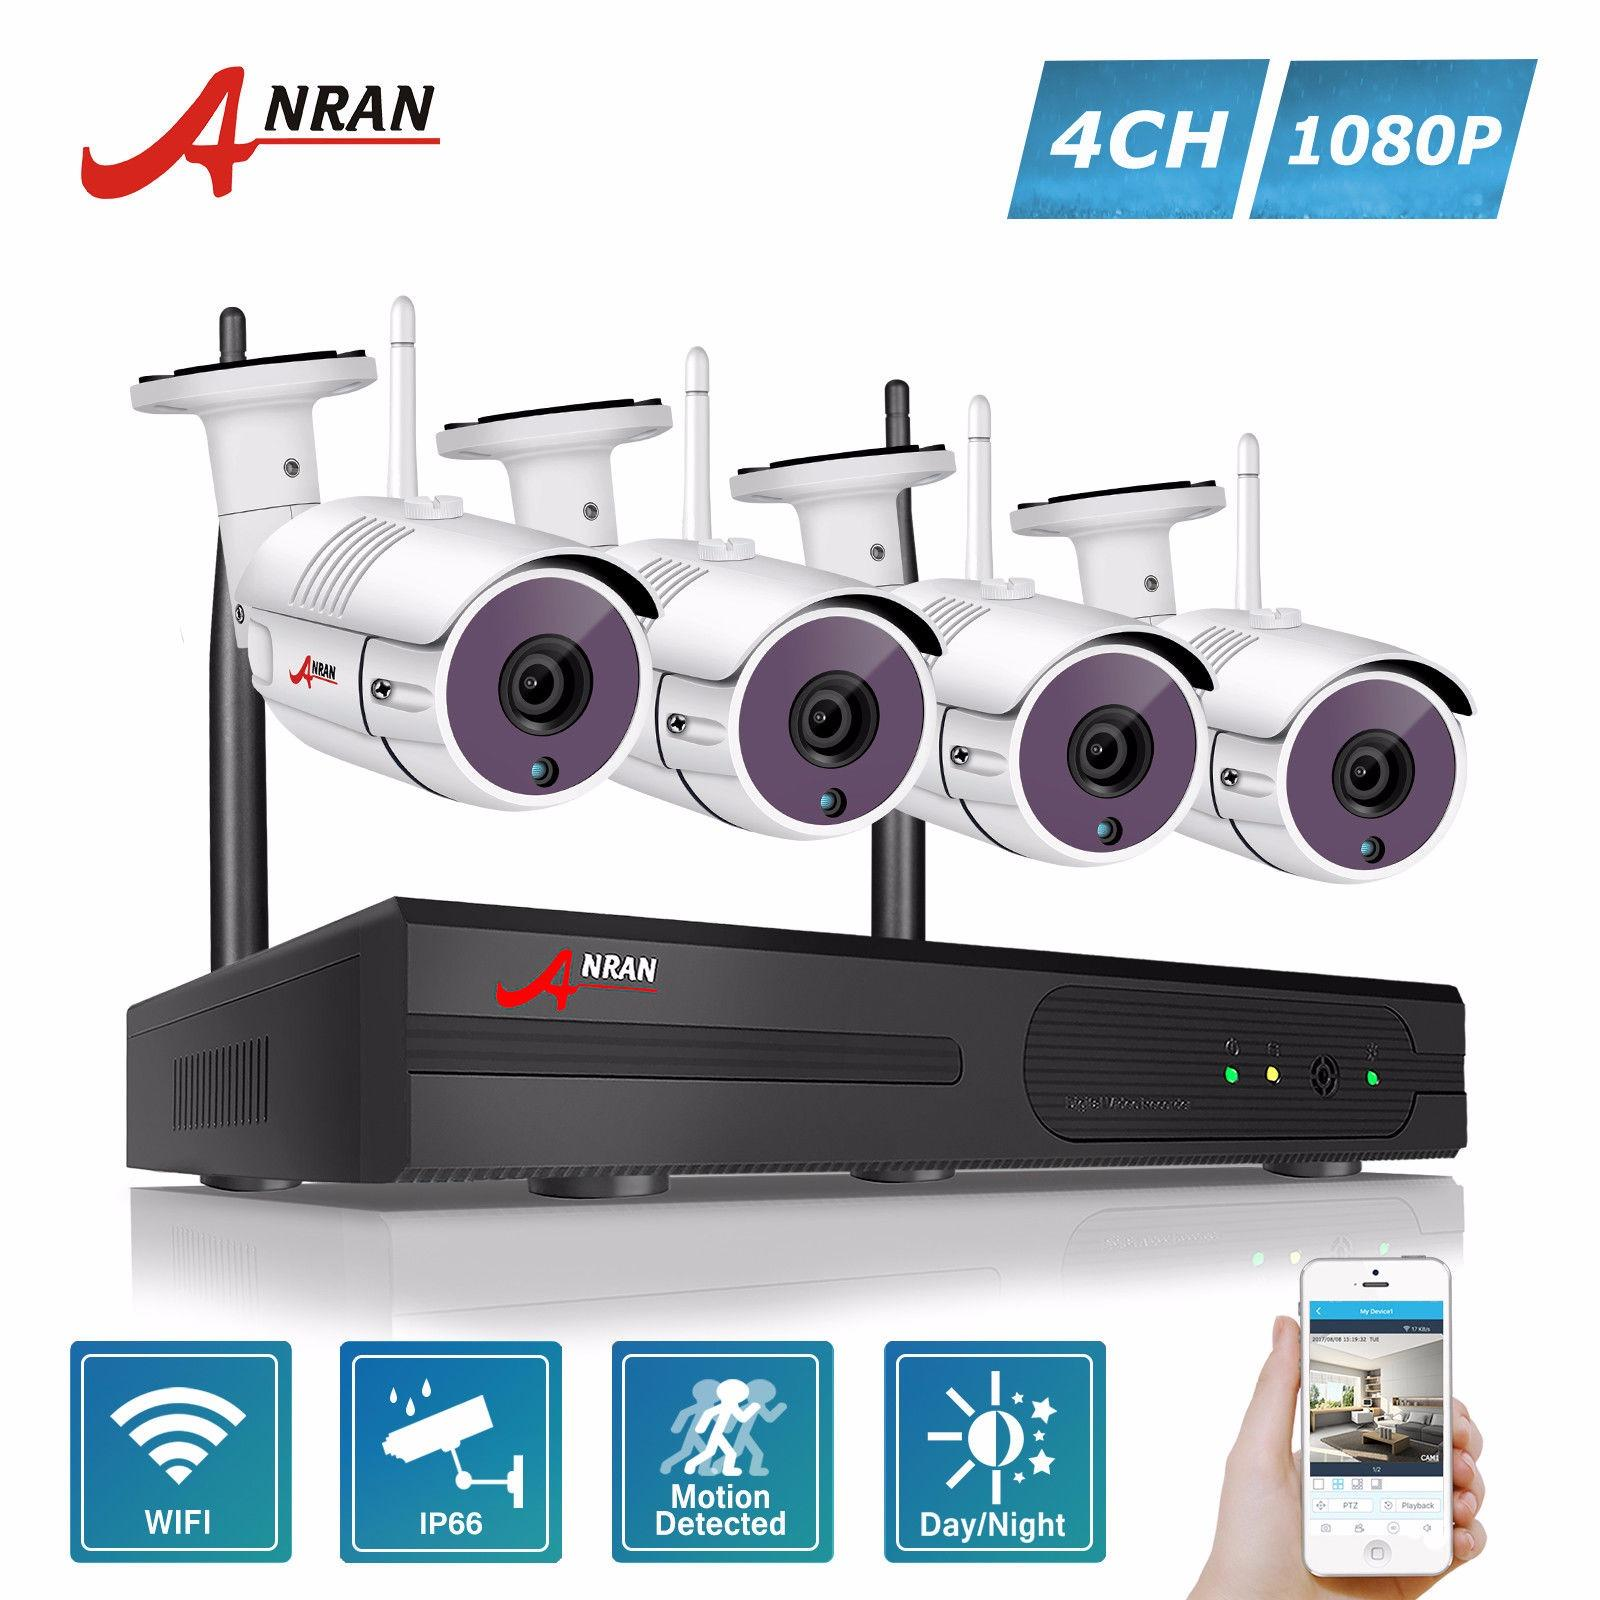 Jual Anran 4Ch Wireless Nvr Security Cctv System P2P 1080P Hd Outdoor Vandalproof Wfi Ip Camera Anran Online